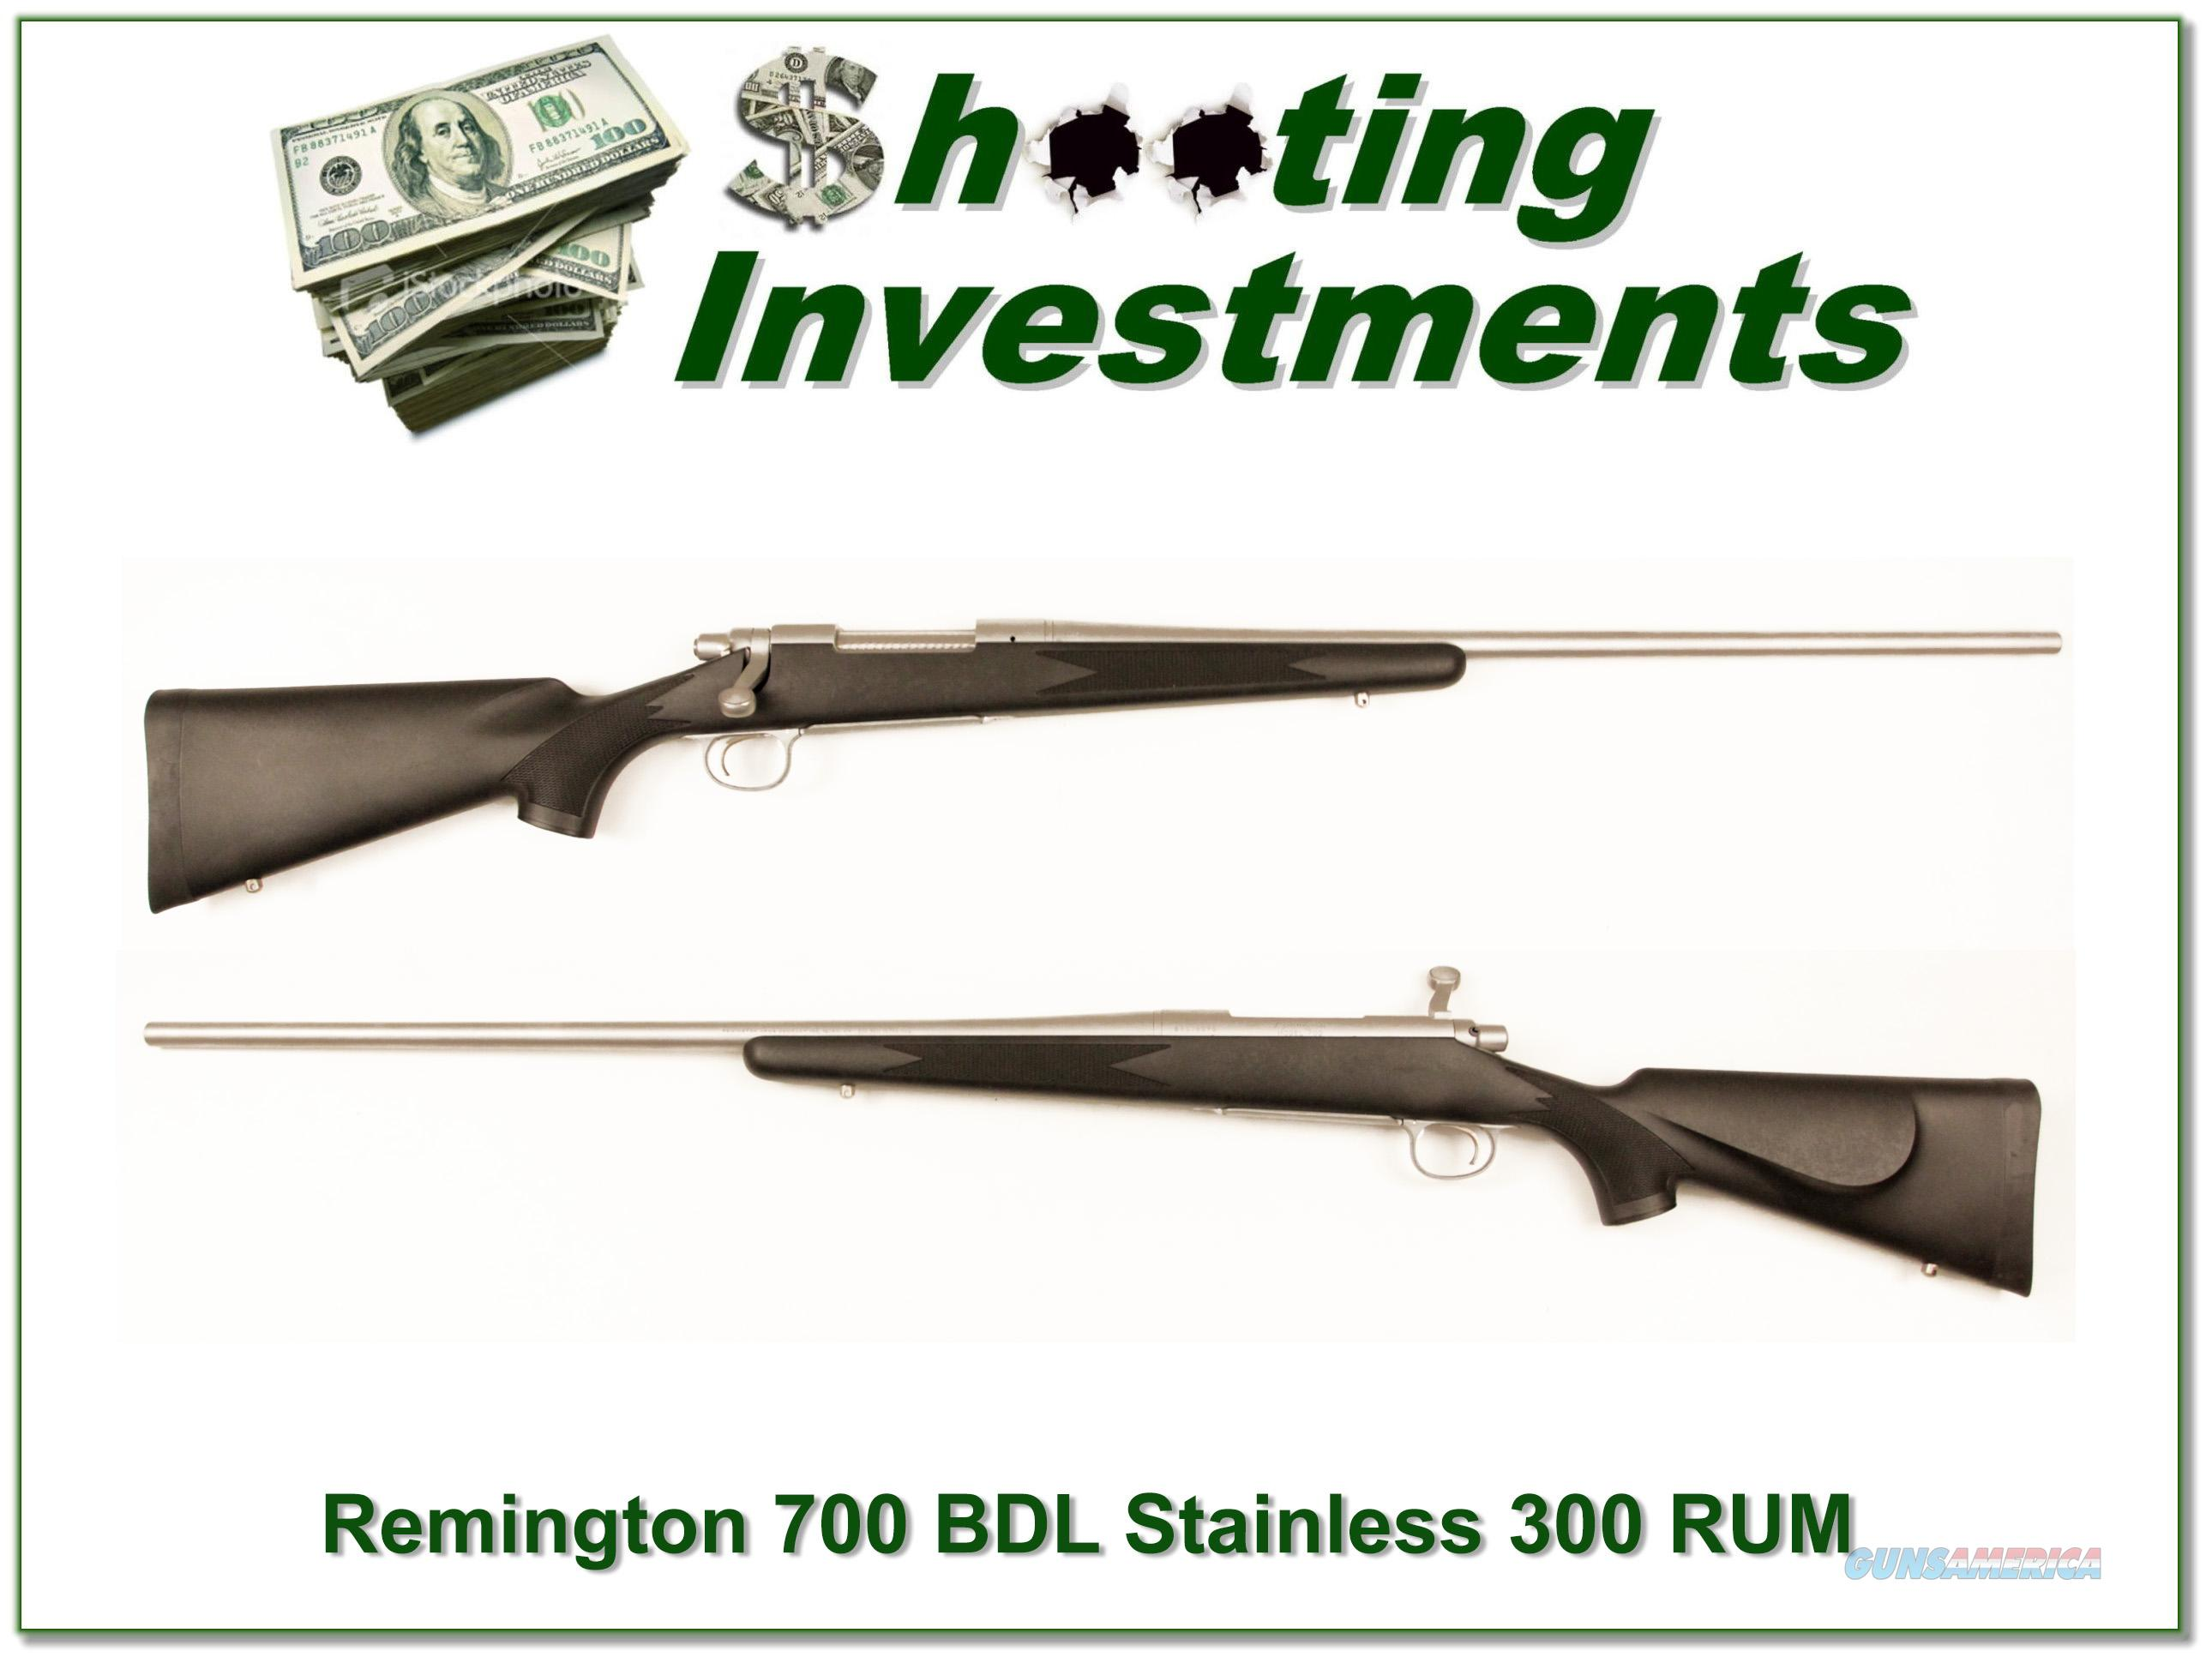 Remington 700 BDL Stainless 300 RUM Ultra Magnum as new  Guns > Rifles > Remington Rifles - Modern > Model 700 > Sporting